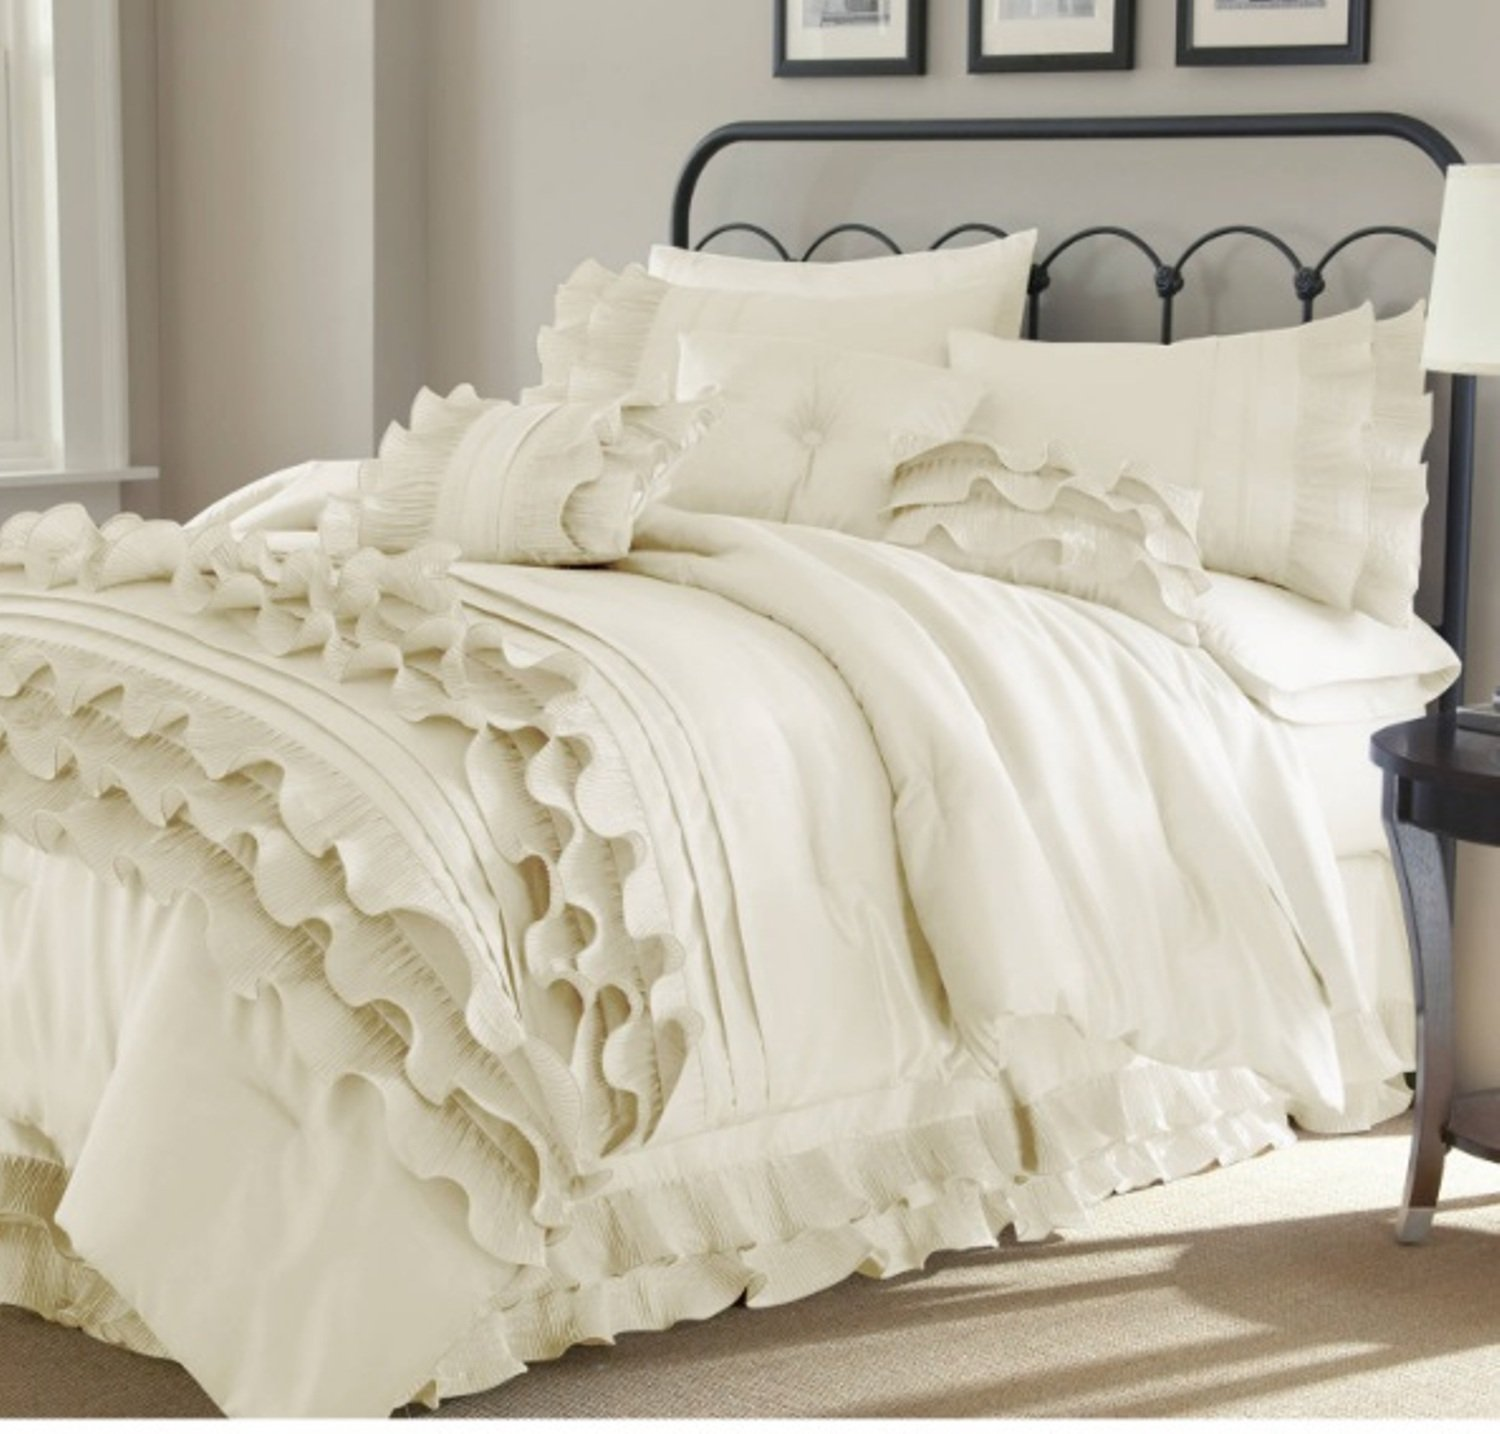 8 Piece Textured Frills Ruffles Design Comforter Set Queen Size, Featuring Solid Elegant Shabby Chic Printed Pattern Comfortable Bedding, Stylish French Country Unique Girls Bedroom Decor, White